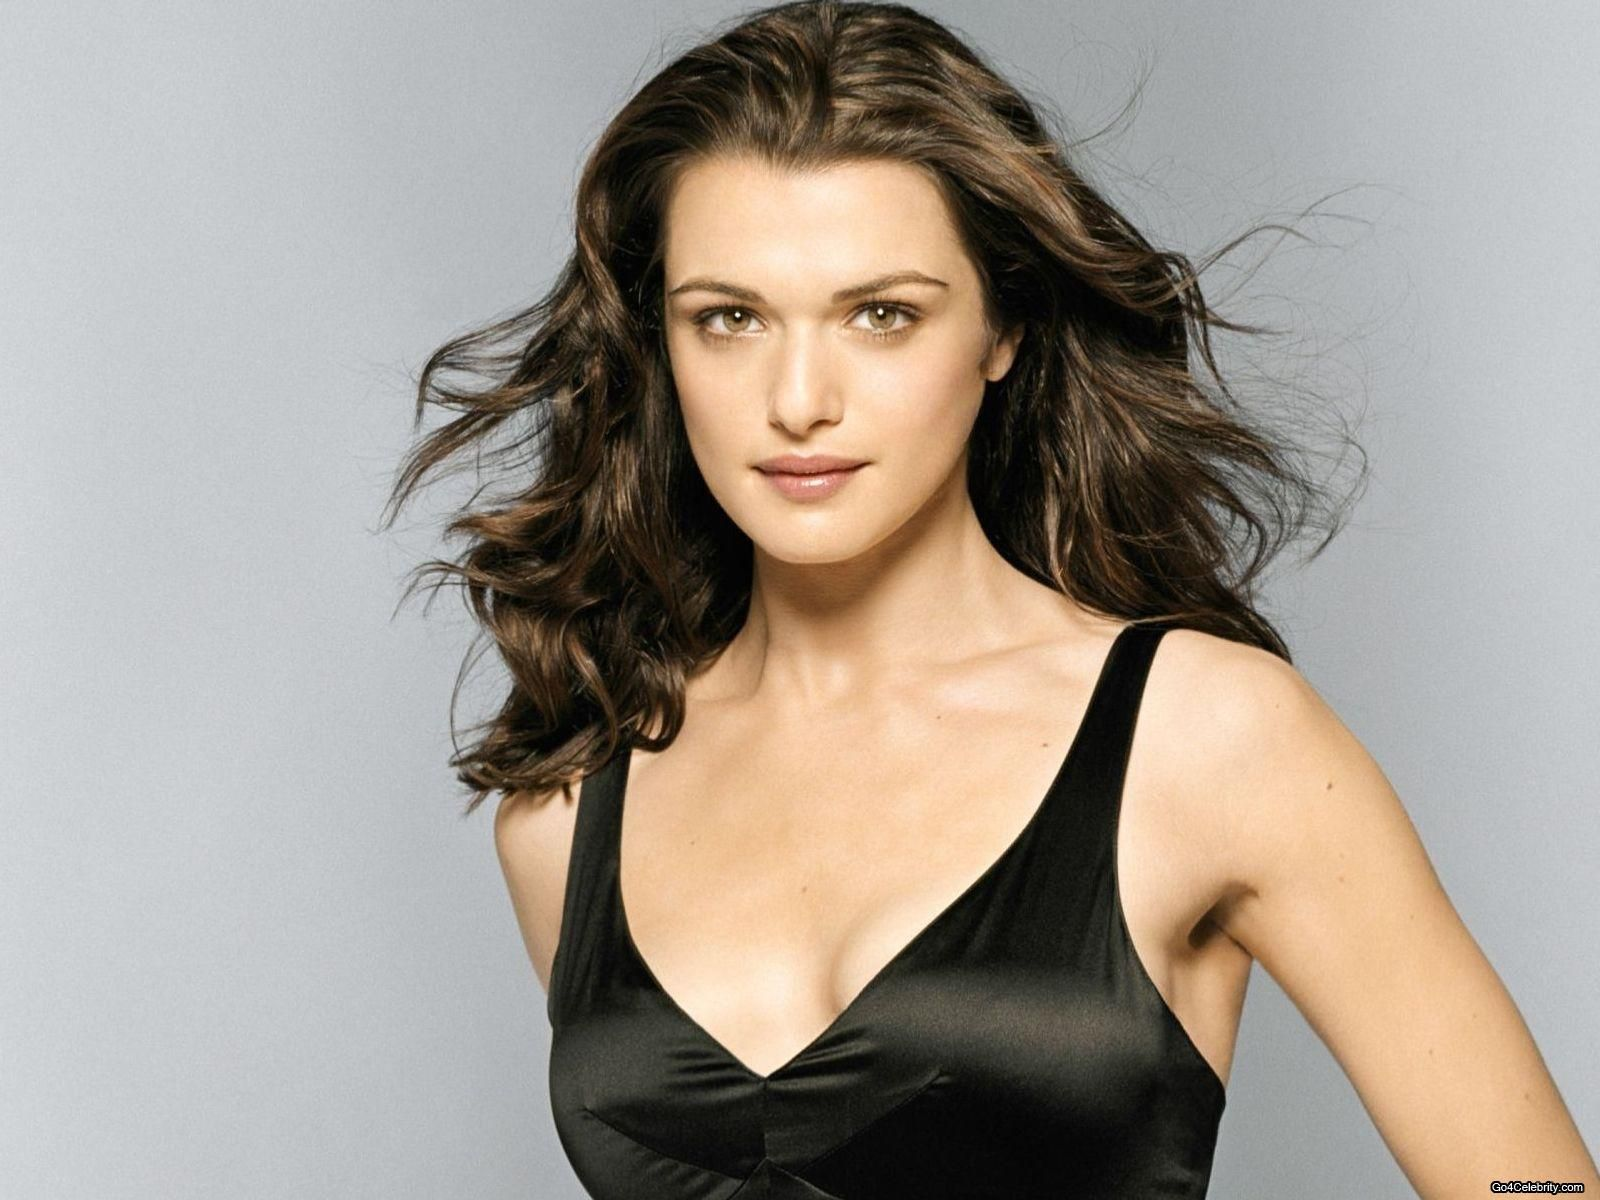 Rachel Weisz (born 1970 (naturalized American citizen) Rachel Weisz (born 1970 (naturalized American citizen) new pictures